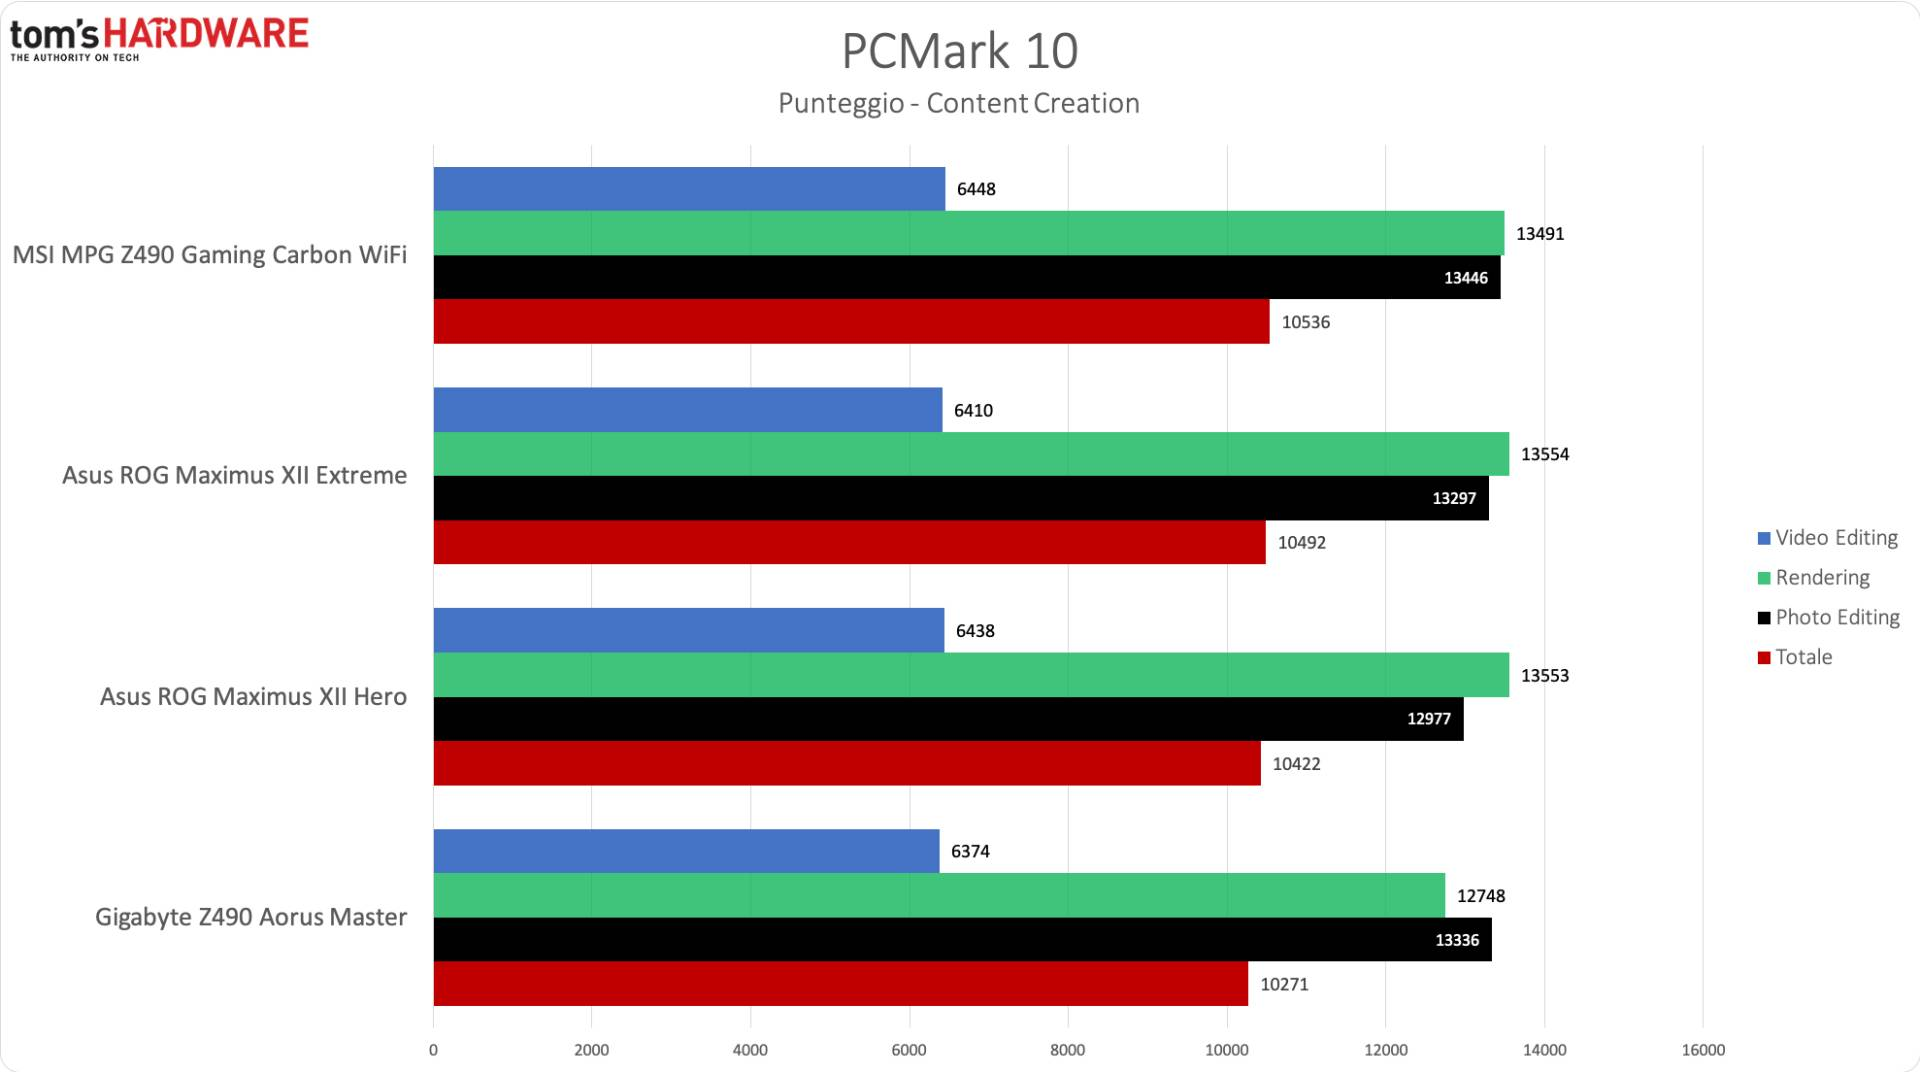 MSI Z490 Gaming Carbon WiFi - PCM10 Content Creation